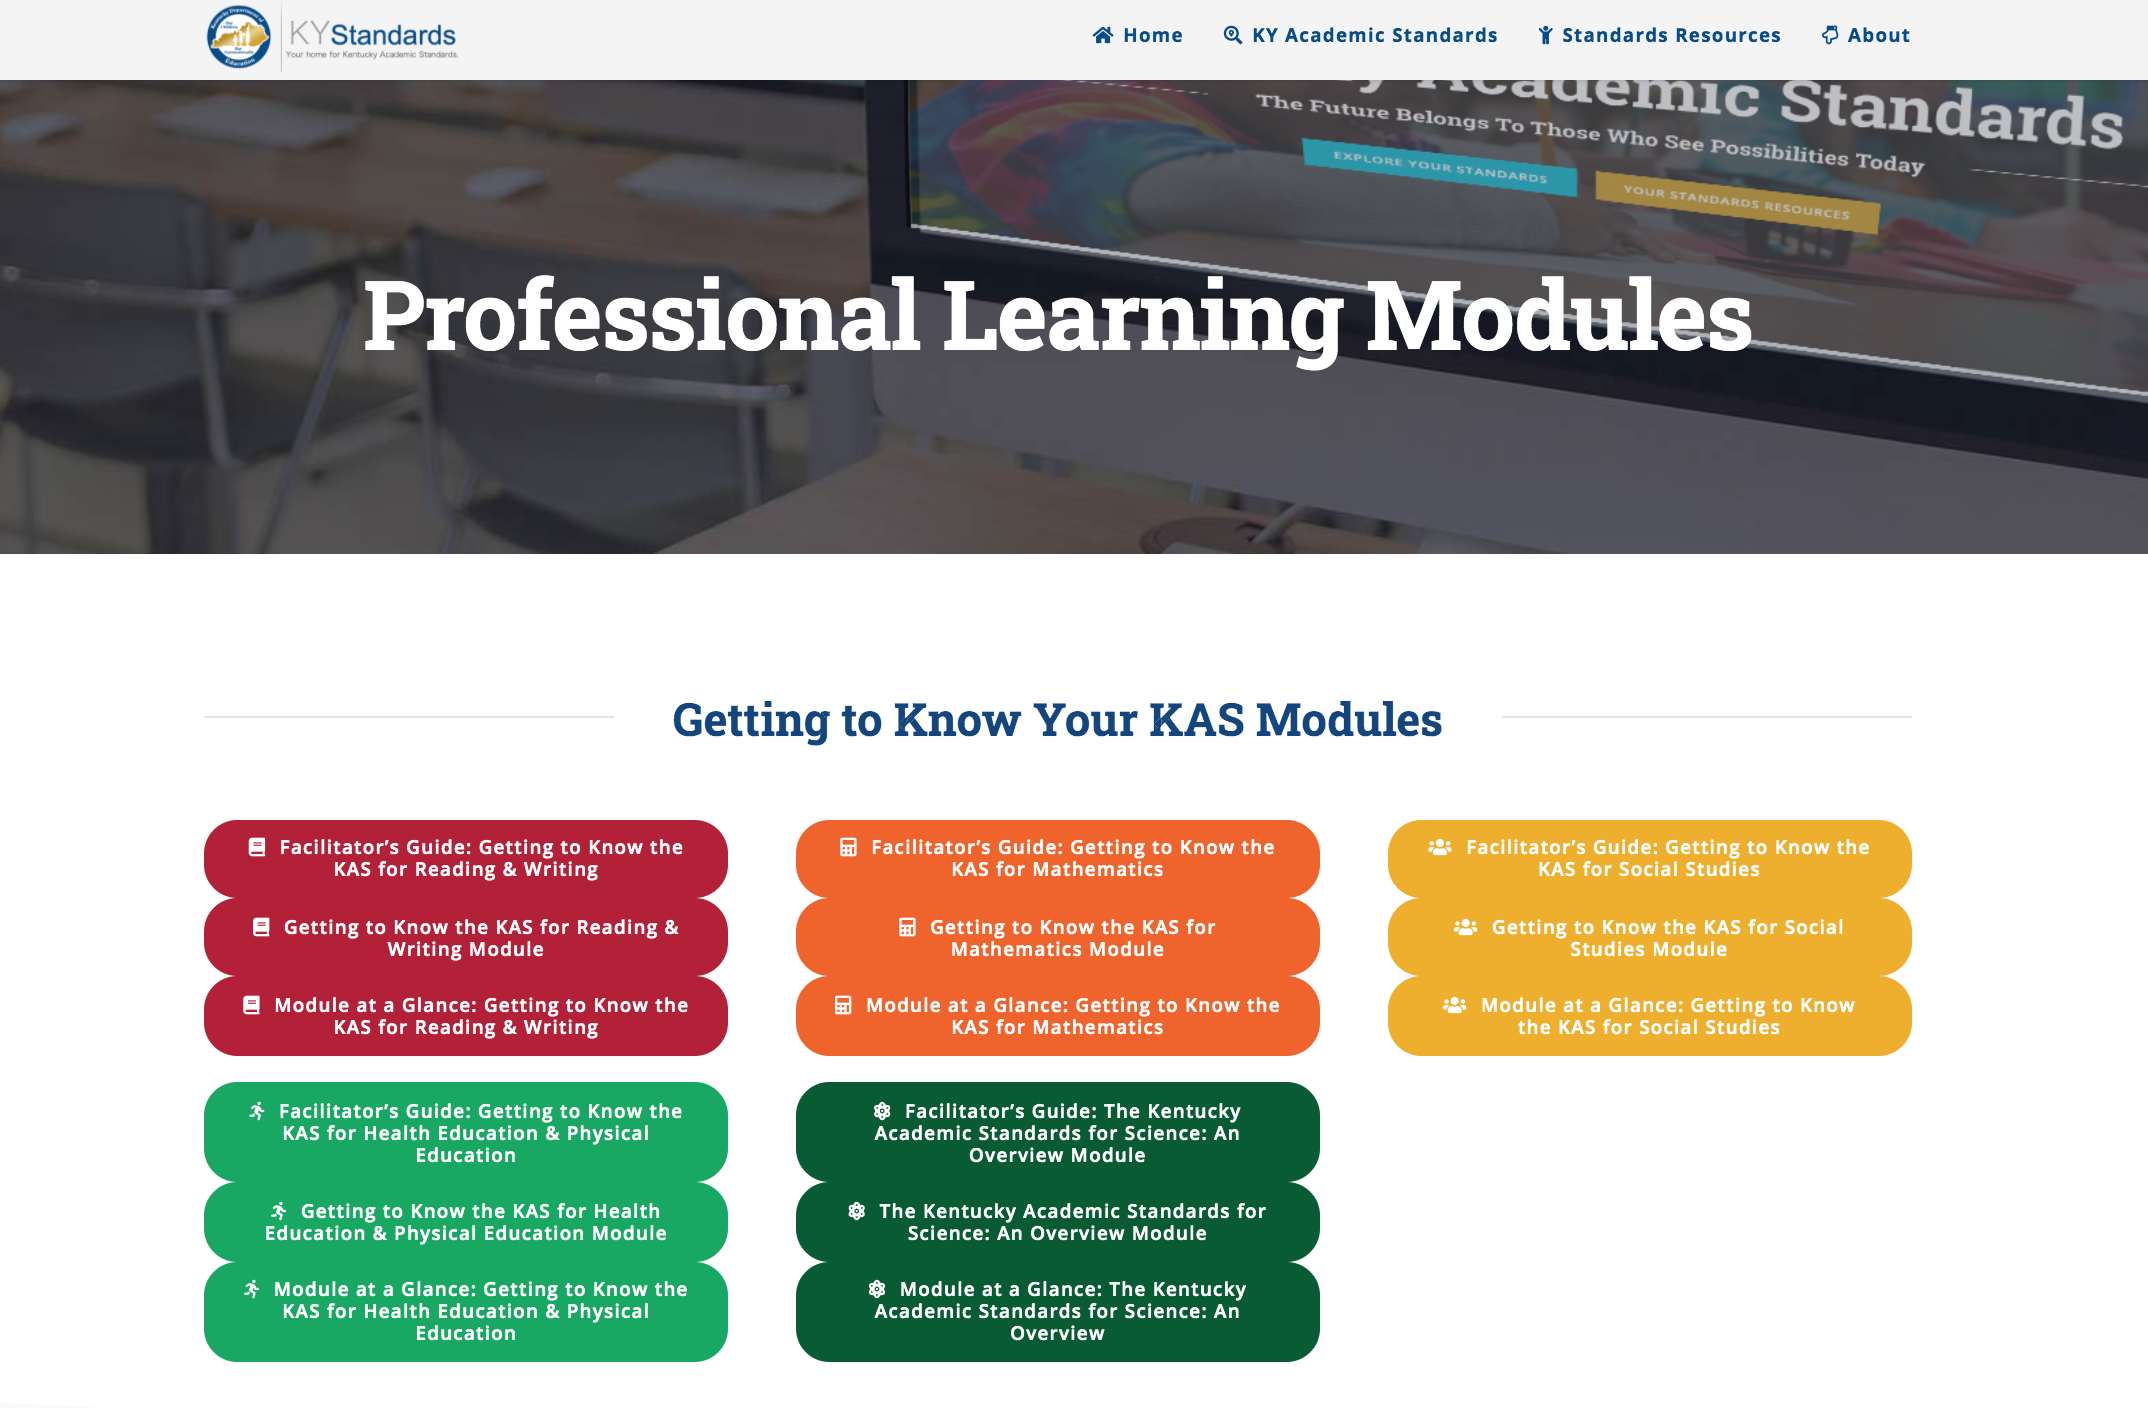 Professional Learning Modules webpage on KYstandards.org